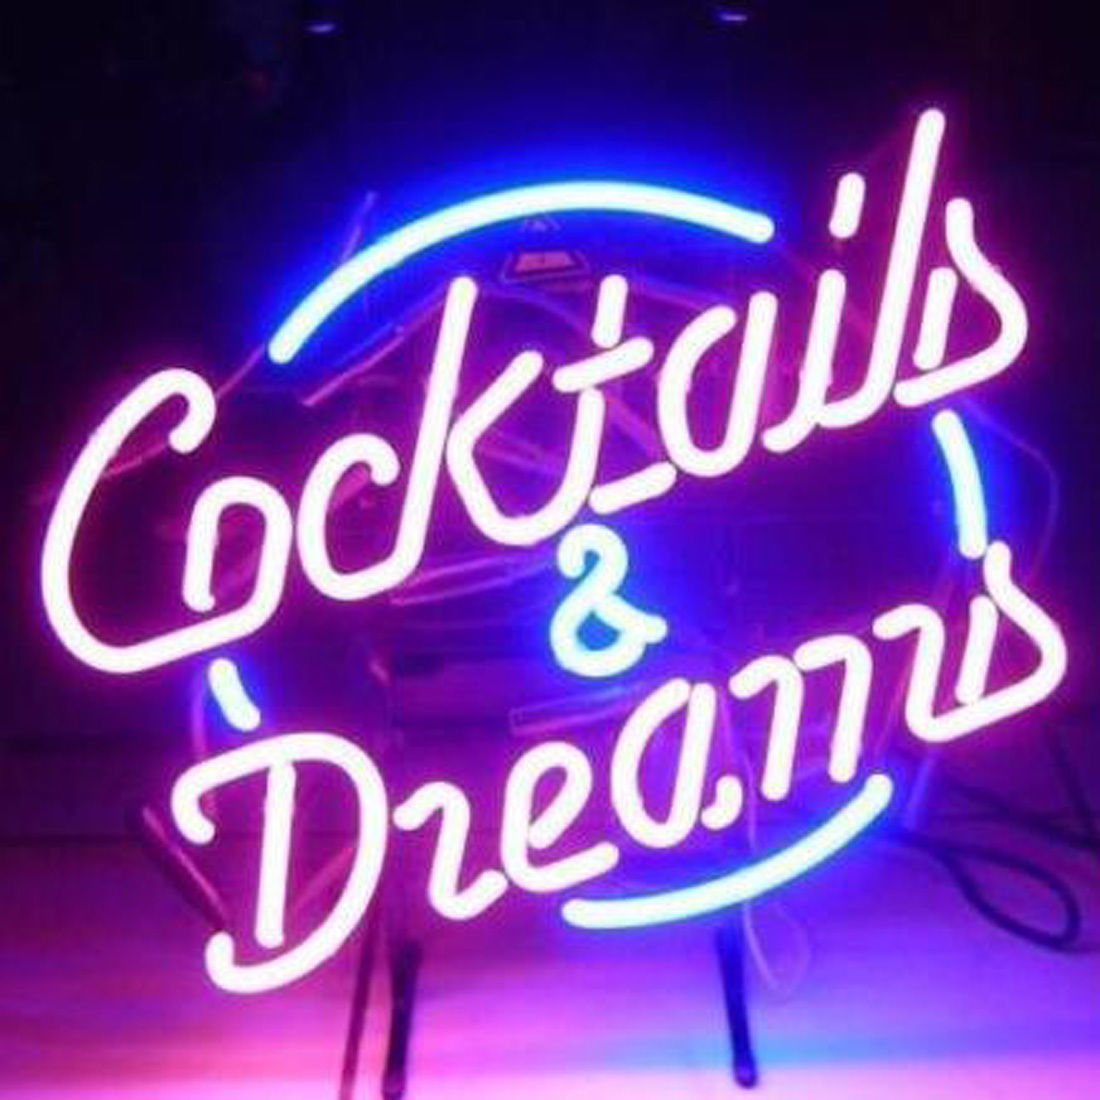 """New Cocktails And Dreams Bar Pub Lamp Light BEER Neon Sign 24""""x20"""""""